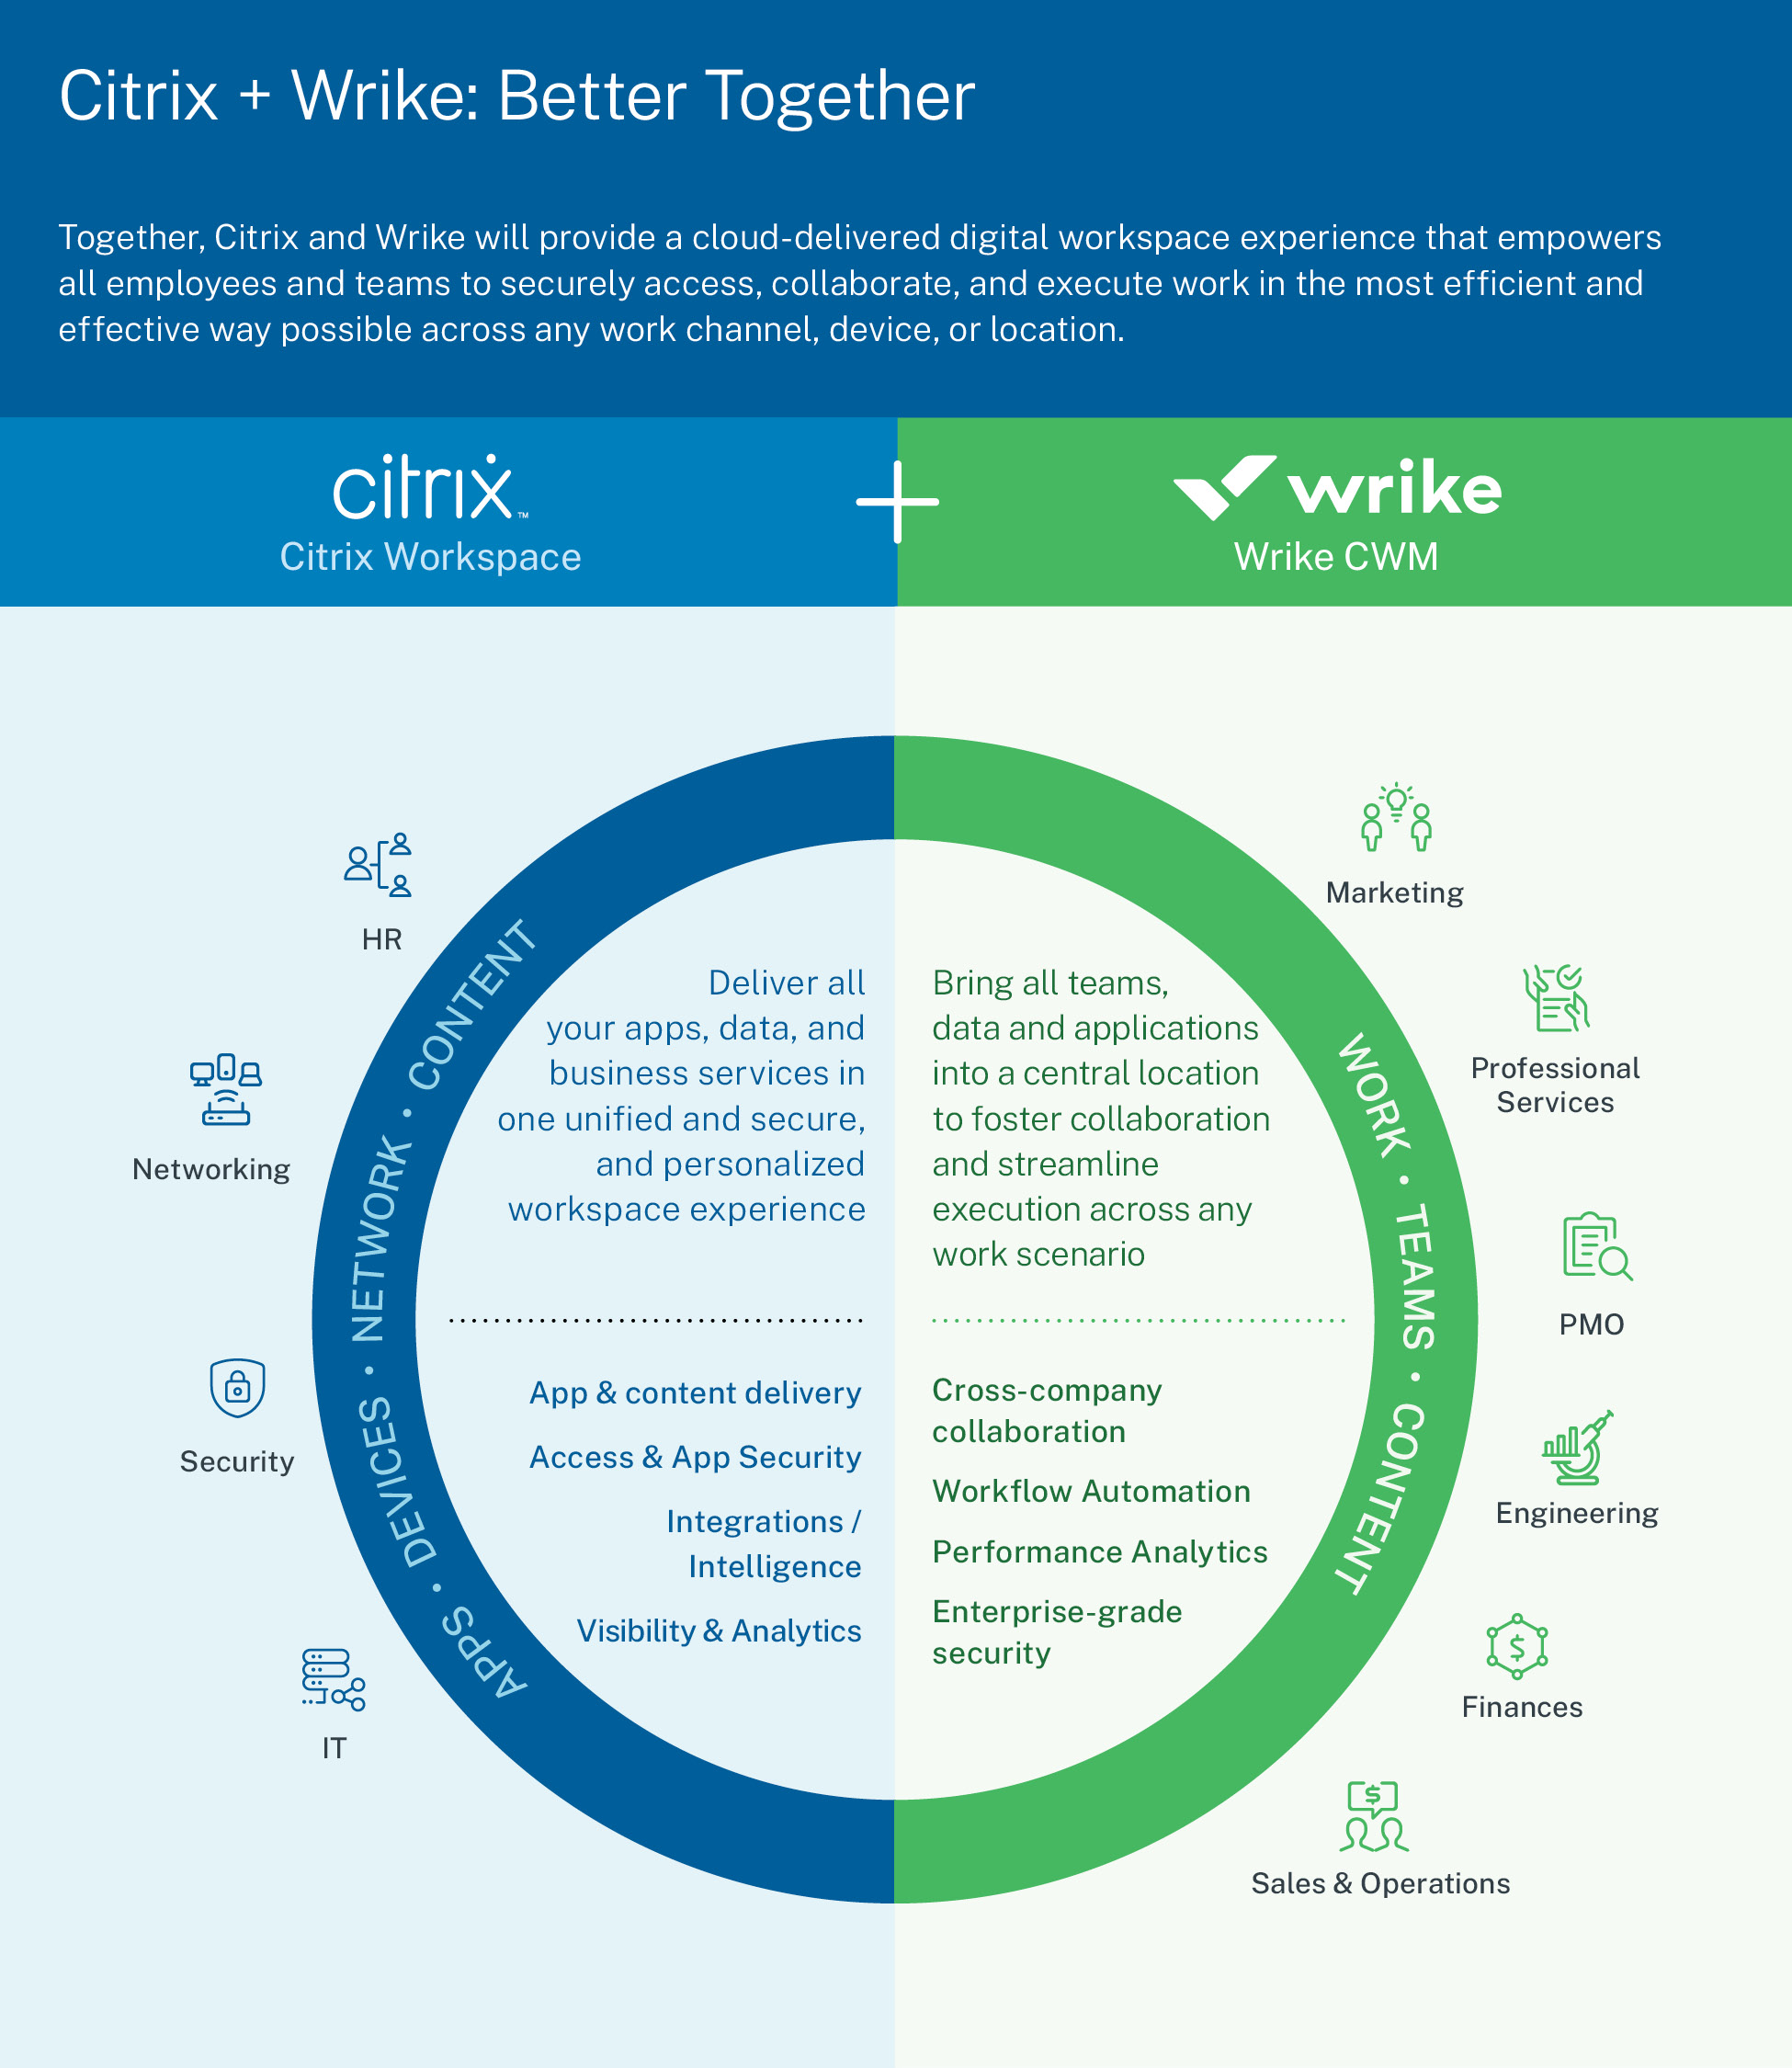 Citrix to Acquire Wrike, Delivering Modern Digital Workspace and Advancing Future of Work